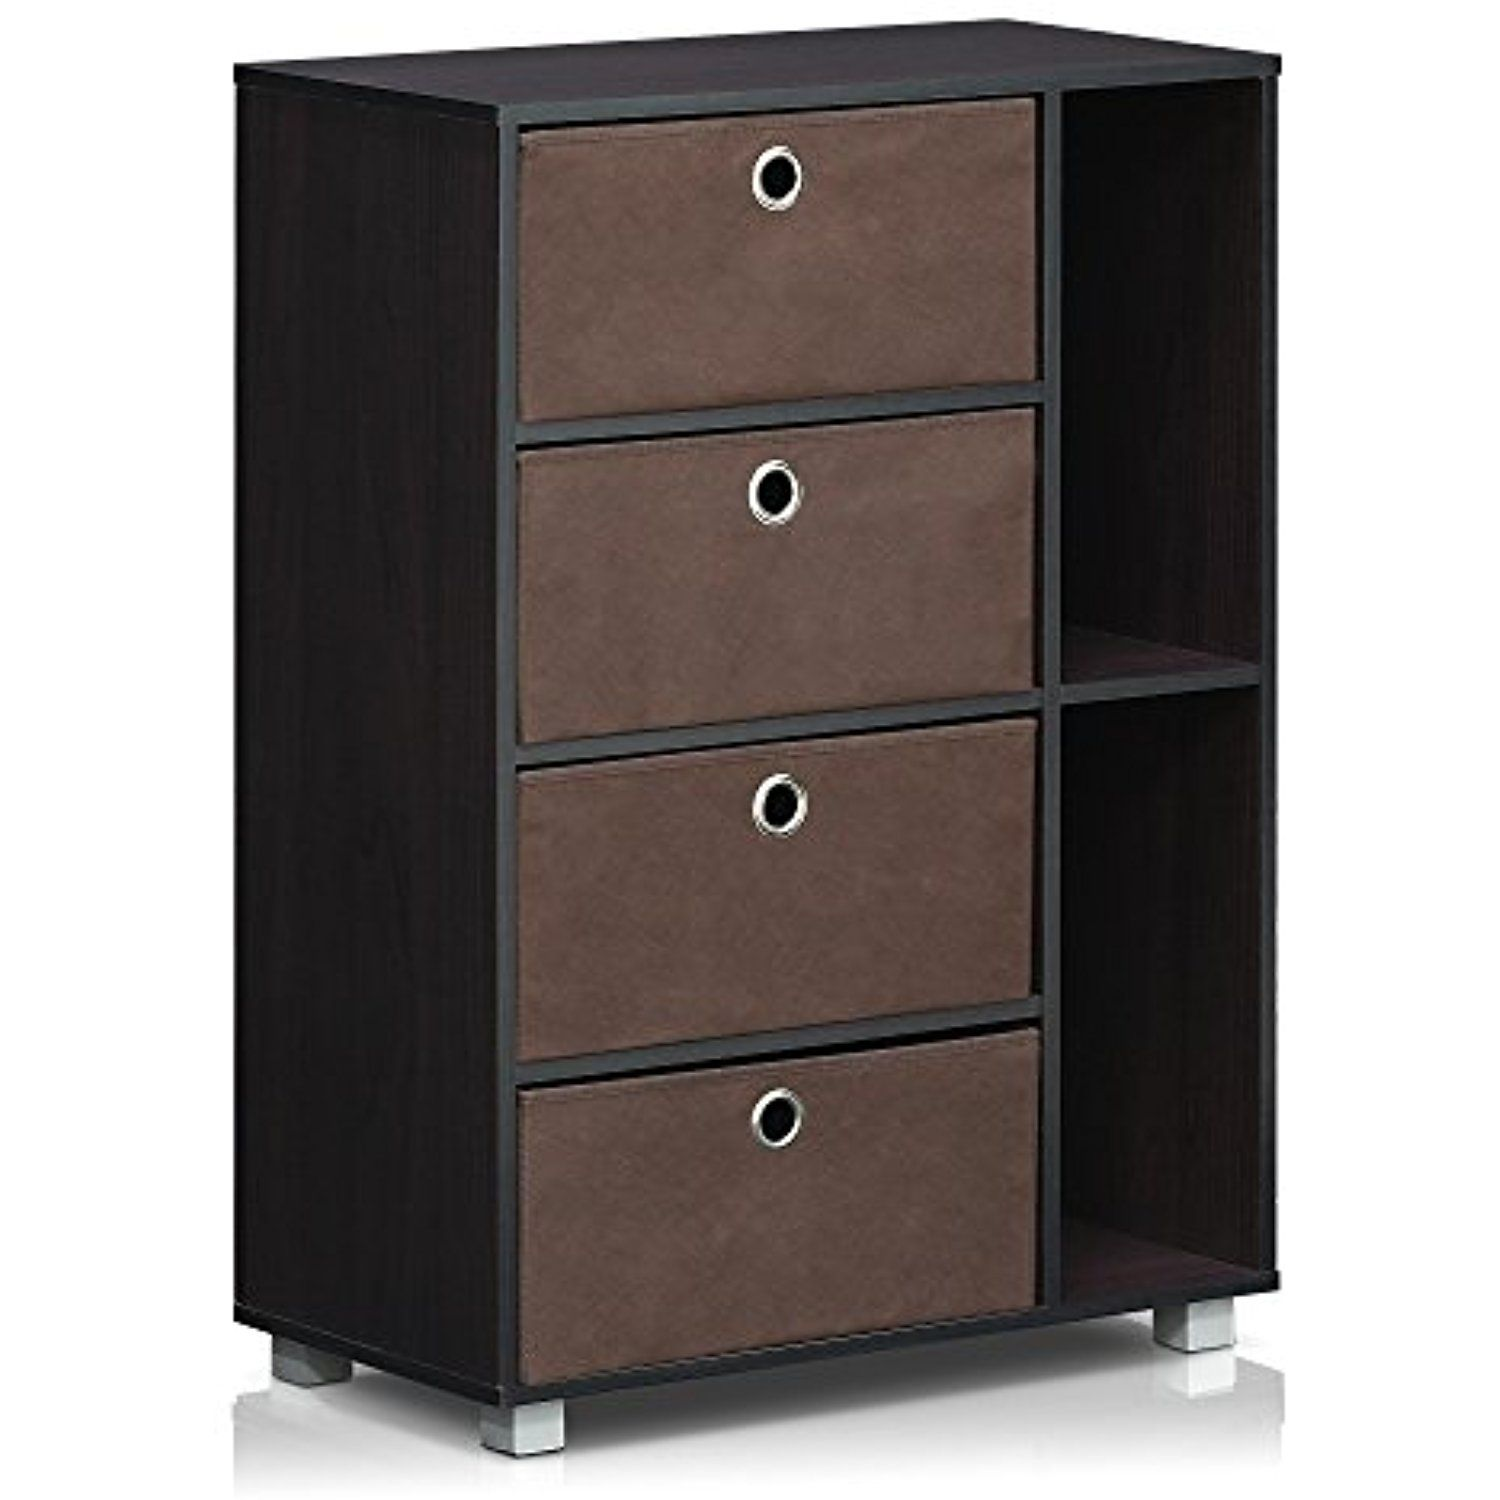 Furinno dwn multipurpose storage cabinet w bintype drawers